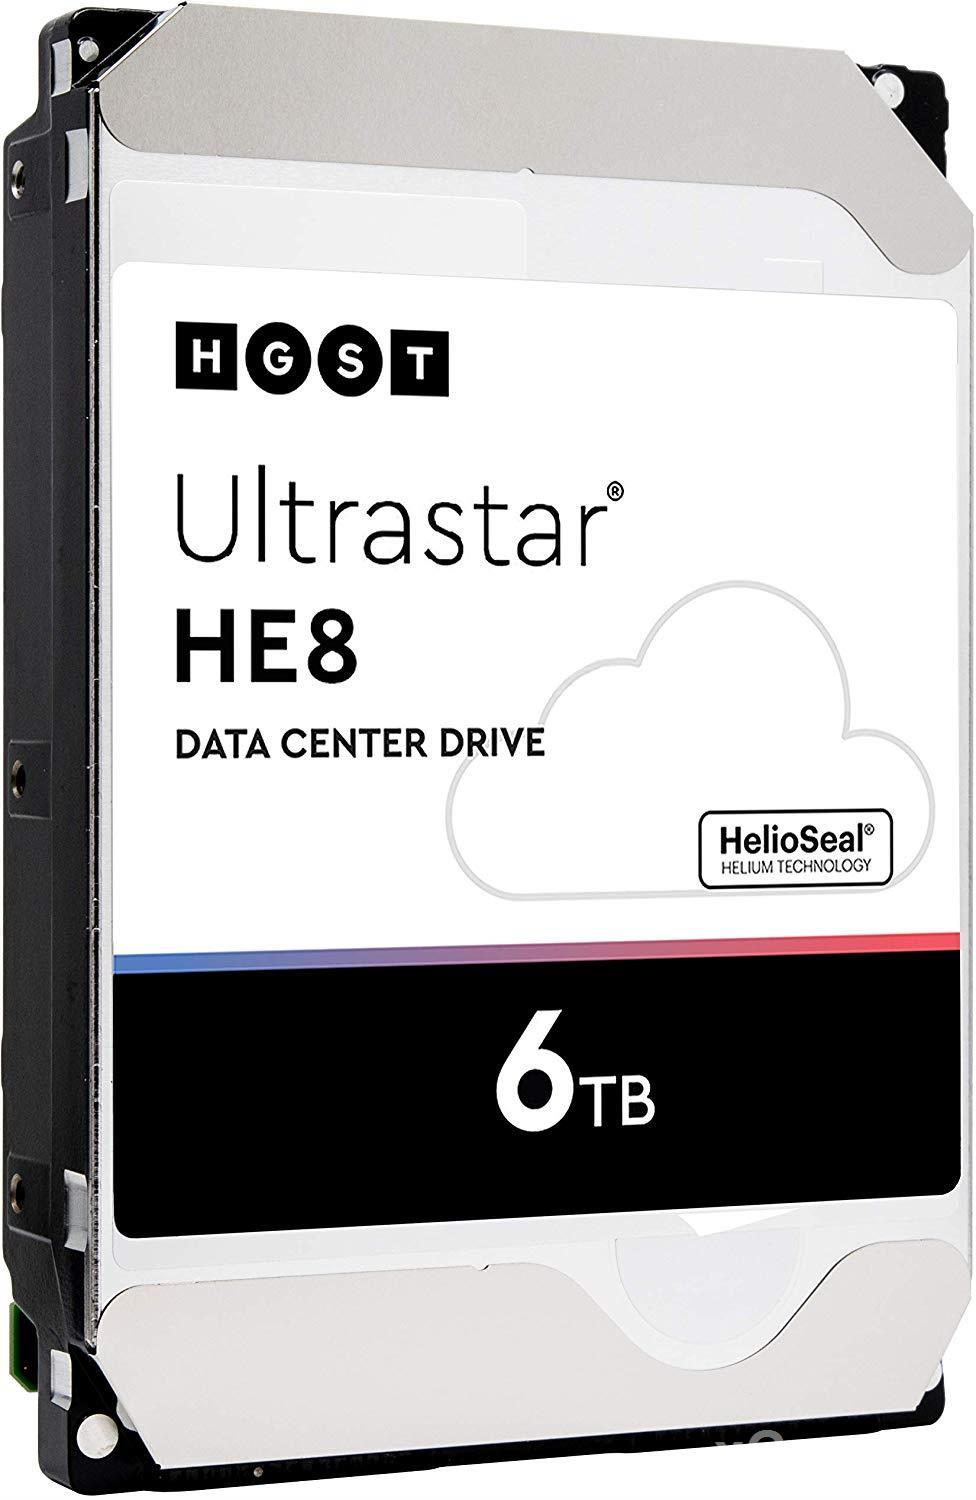 Ultrastar - HGST HP Ultrastar He8: Best HDD for Gaming